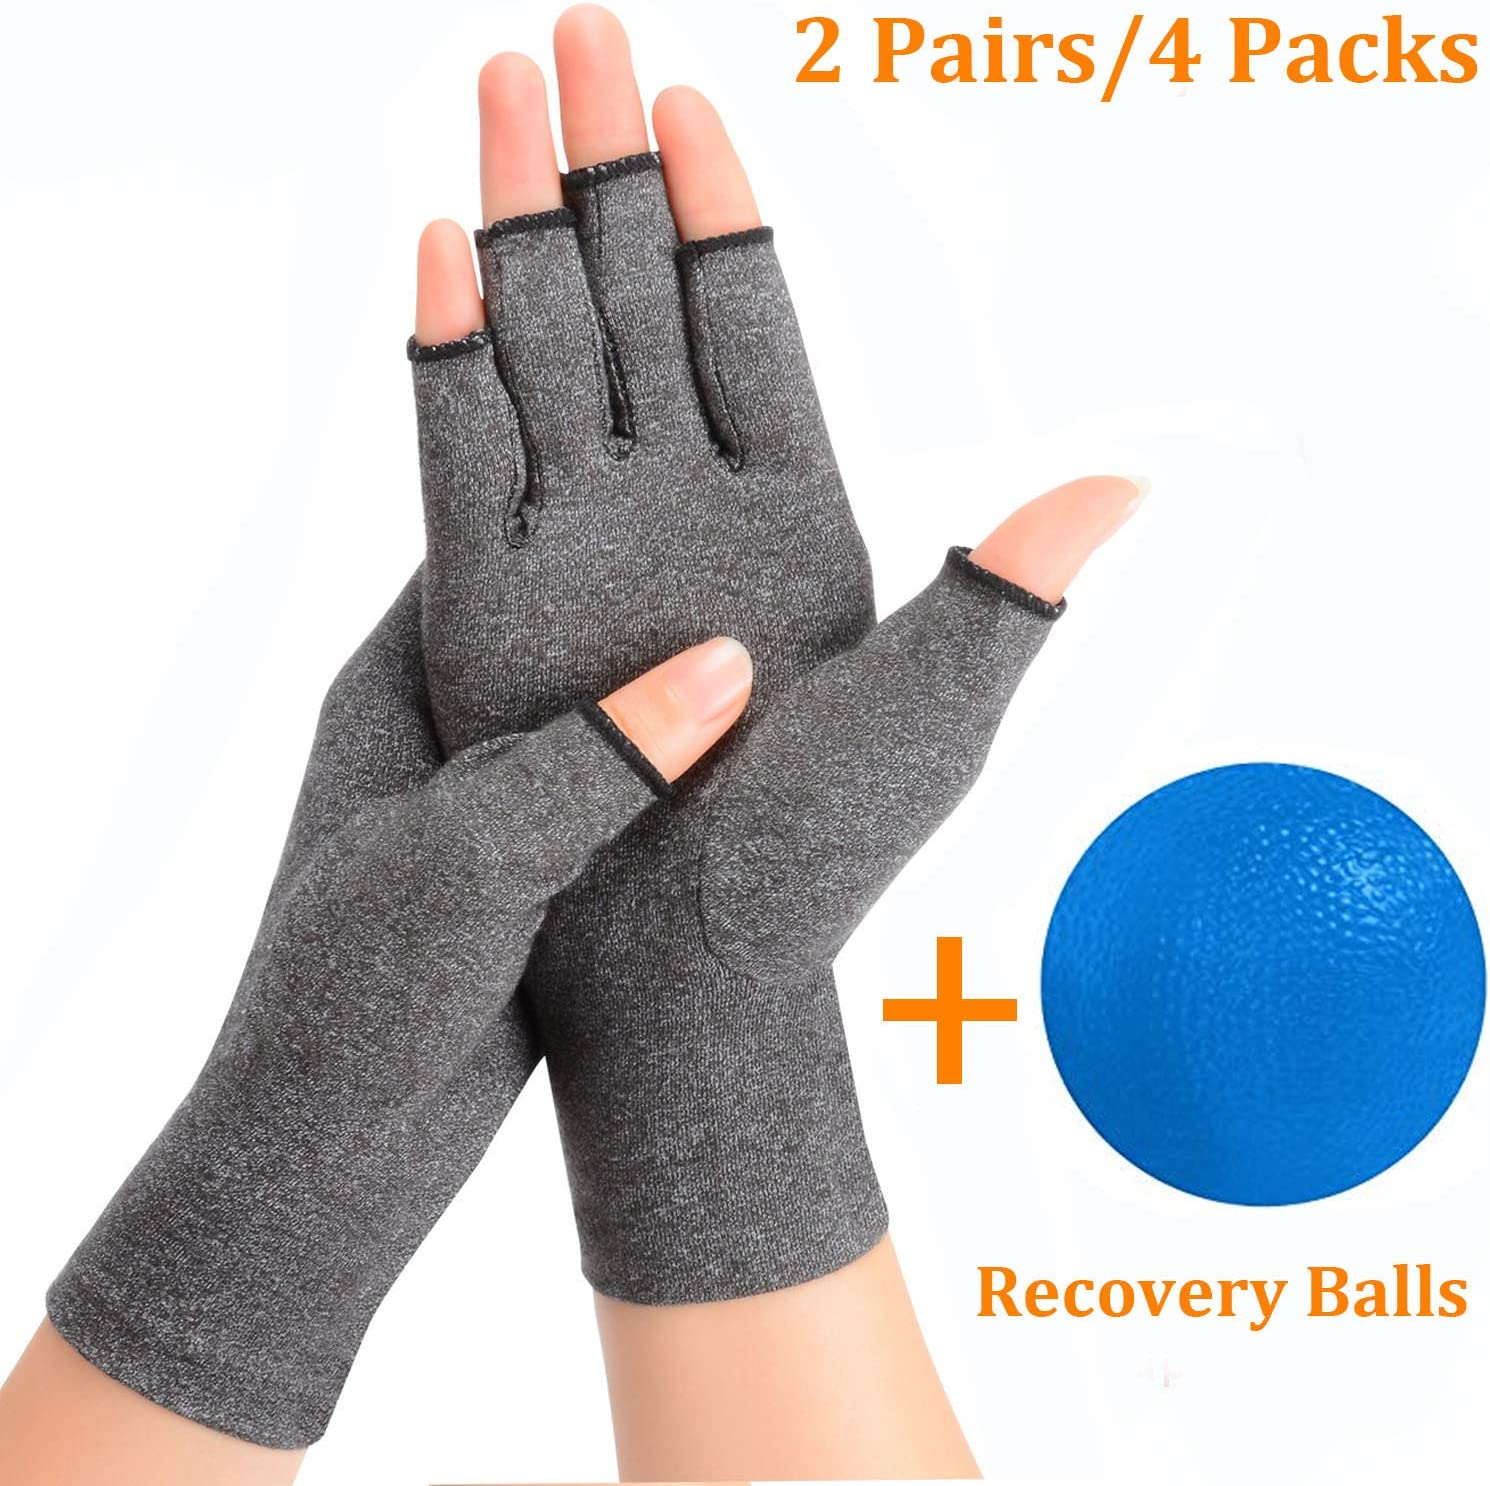 2 Pairs Arthritis Compression Rheumatoid Gloves,Fingerless Gloves to Relieve Paim from Rheumatoid and Osteoarthritis with Free Recovery Ball, Men and Women (Grey, Medium) 711IOw7hQ0L